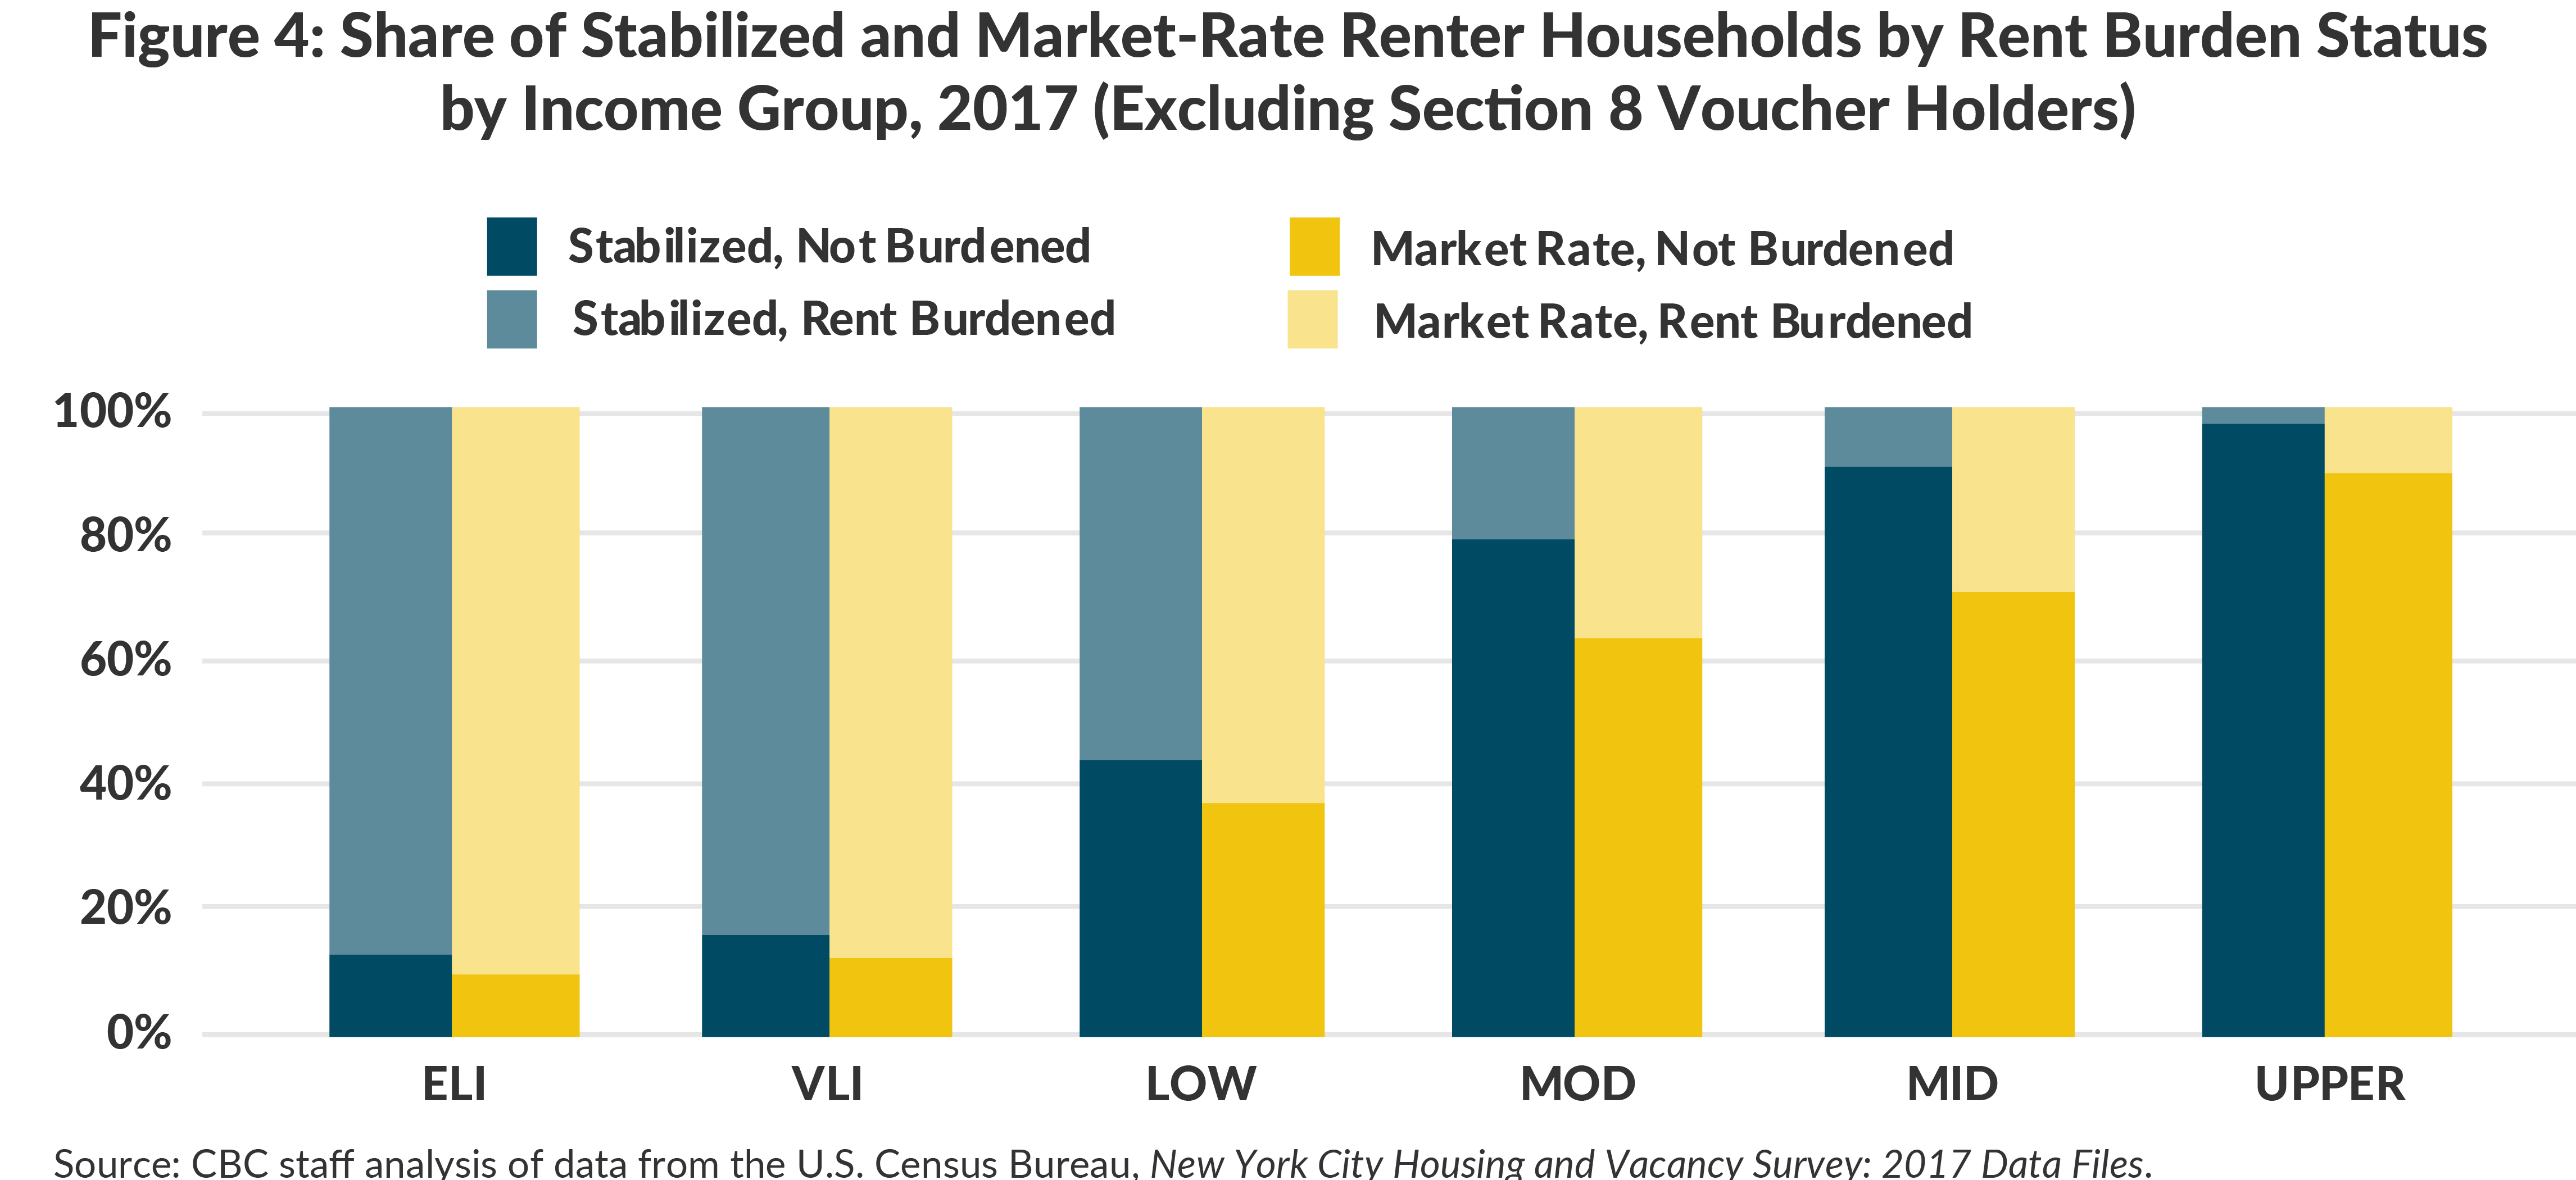 Figure 4: Share of Stabilized and Market-Rate Renter Households by Rent Burden Status by Income Group, 2017 (Excluding Section 8 Voucher Holders)